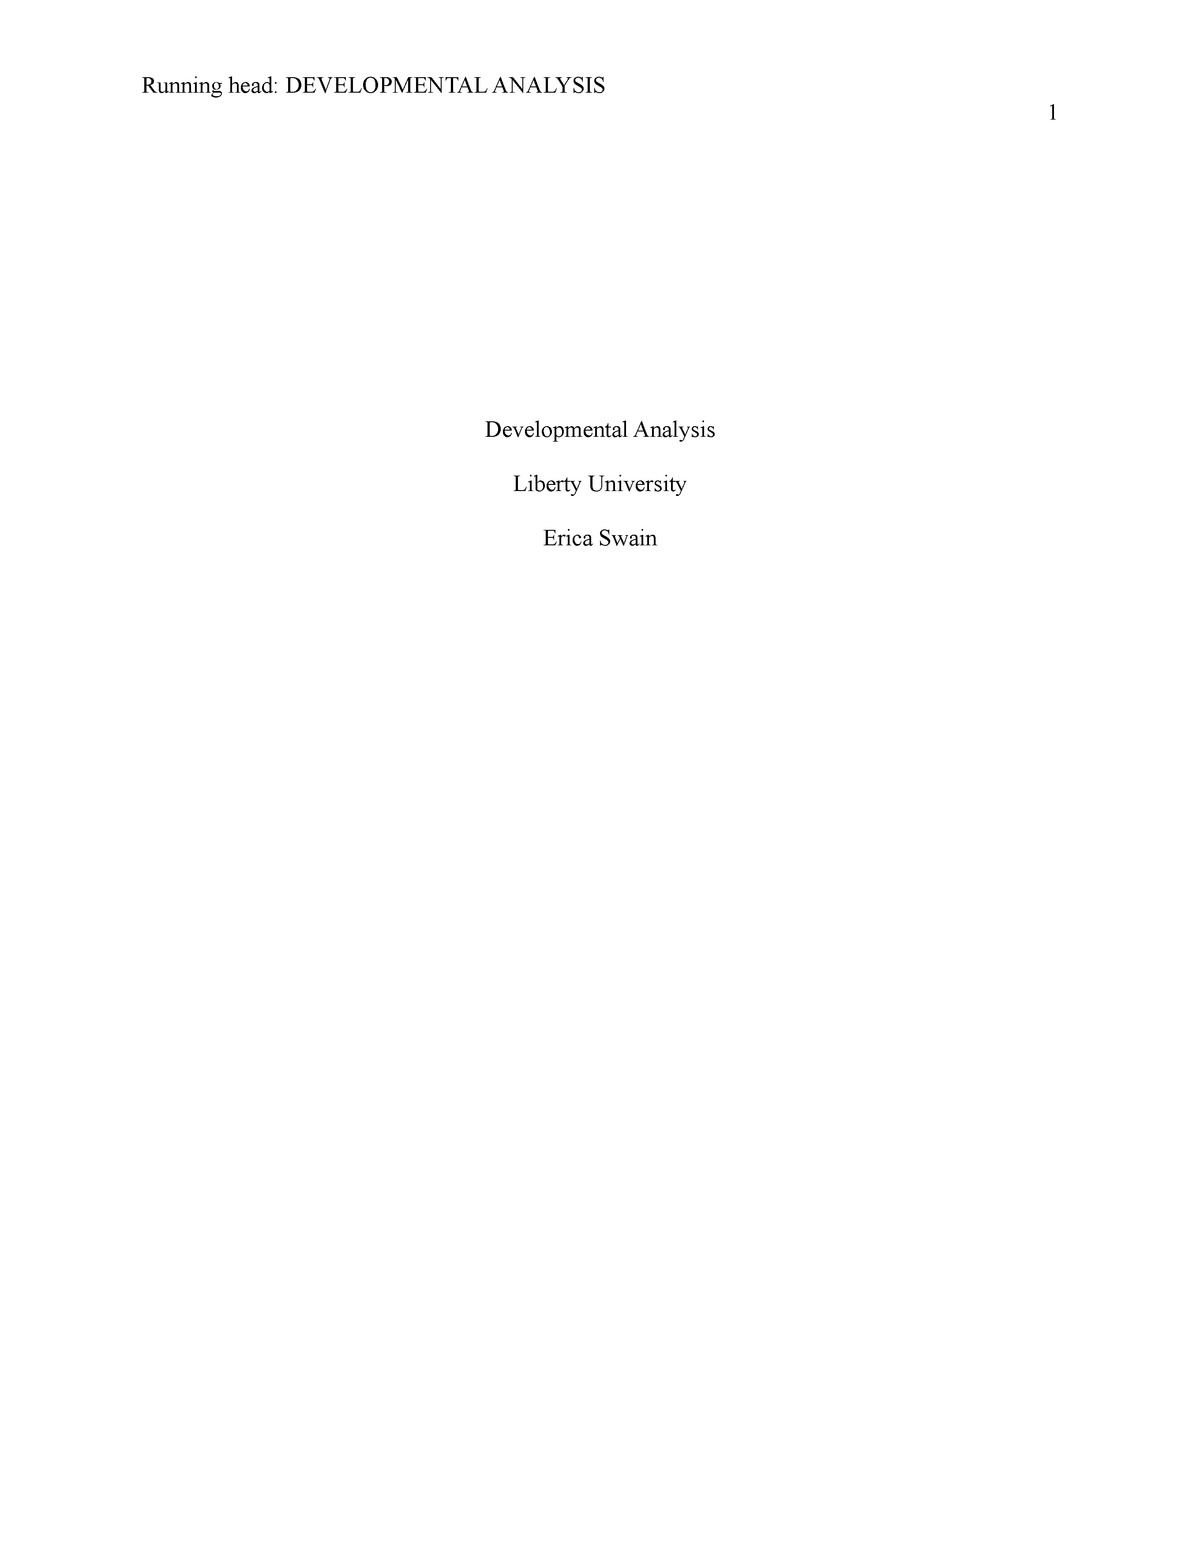 edce 505 personal theory paper